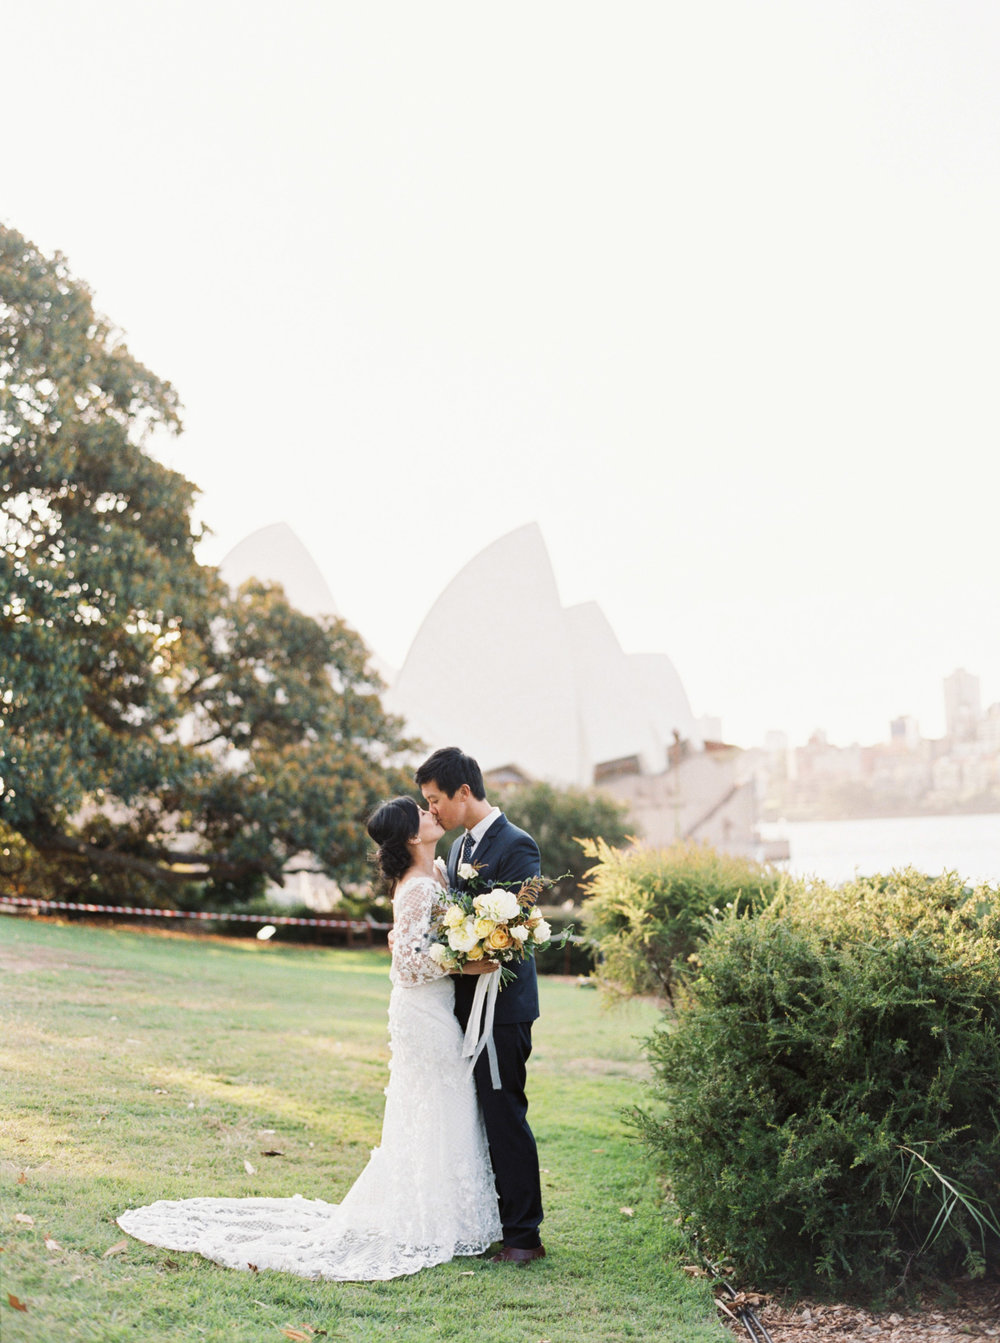 00013- Australia Sydney Wedding Photographer Sheri McMahon.jpg